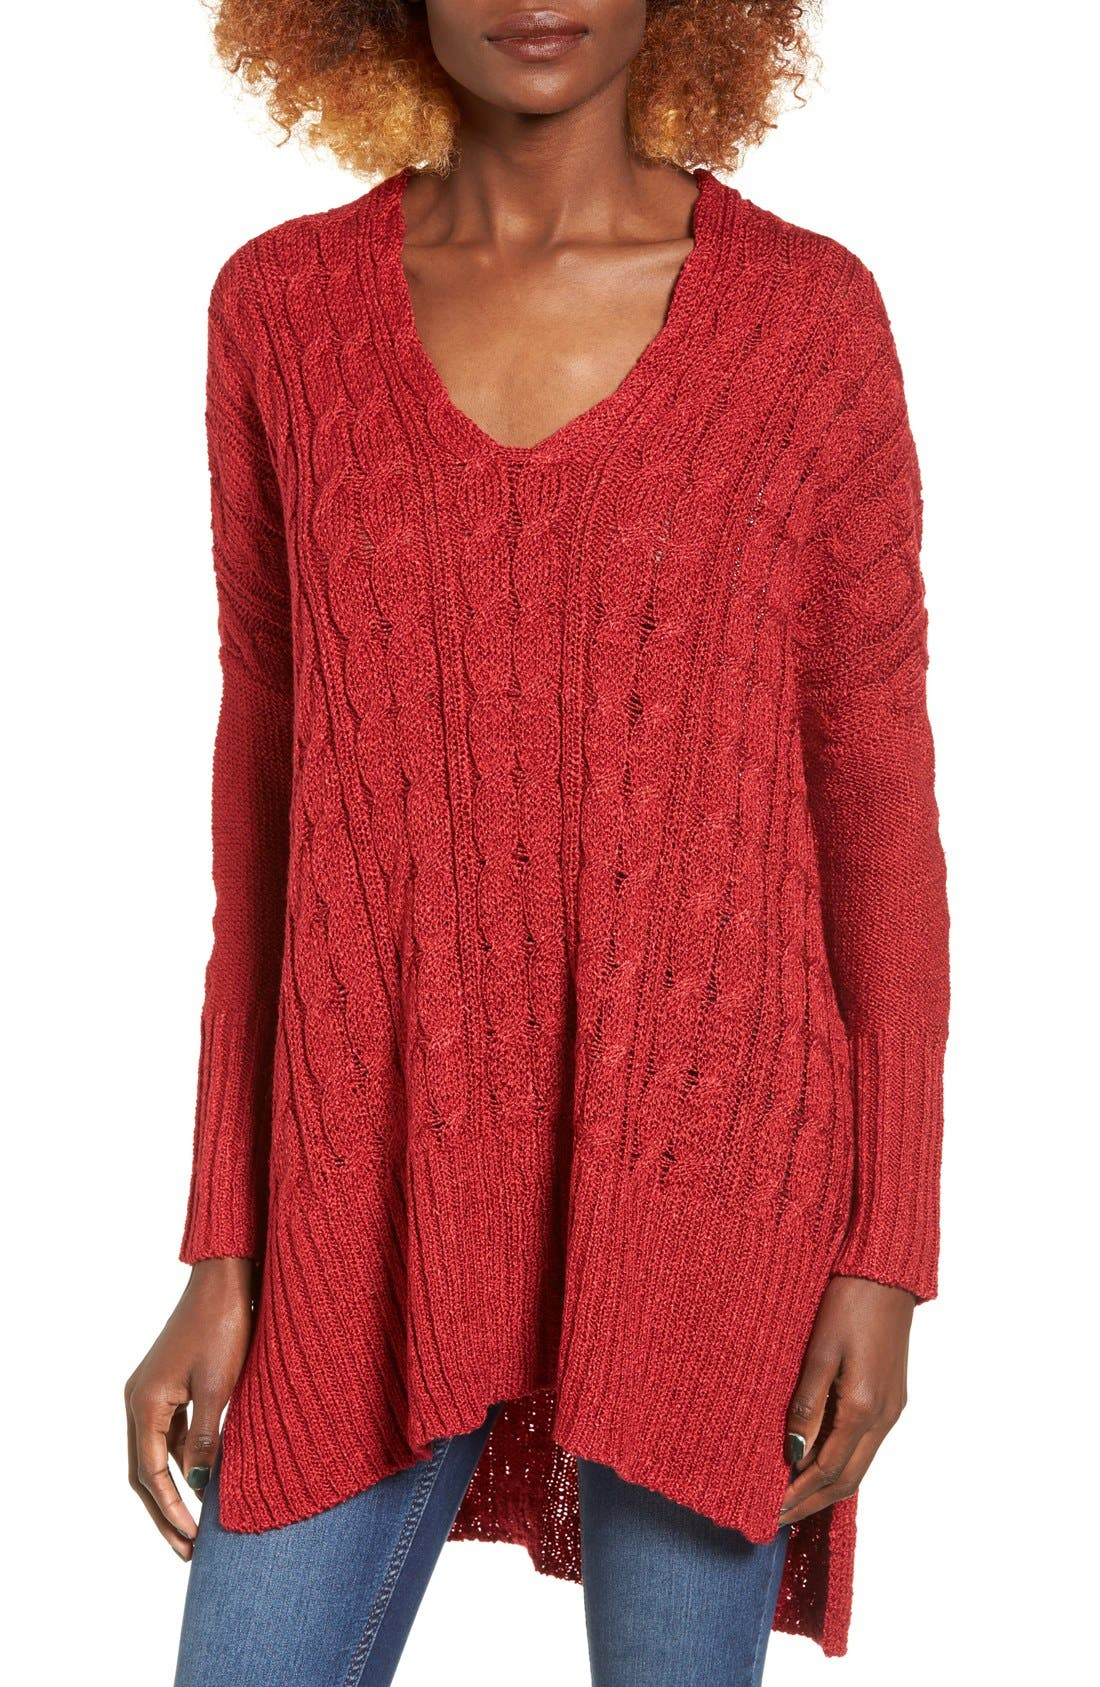 Alternate Image 1 Selected - Love by Design Cable Knit Pullover